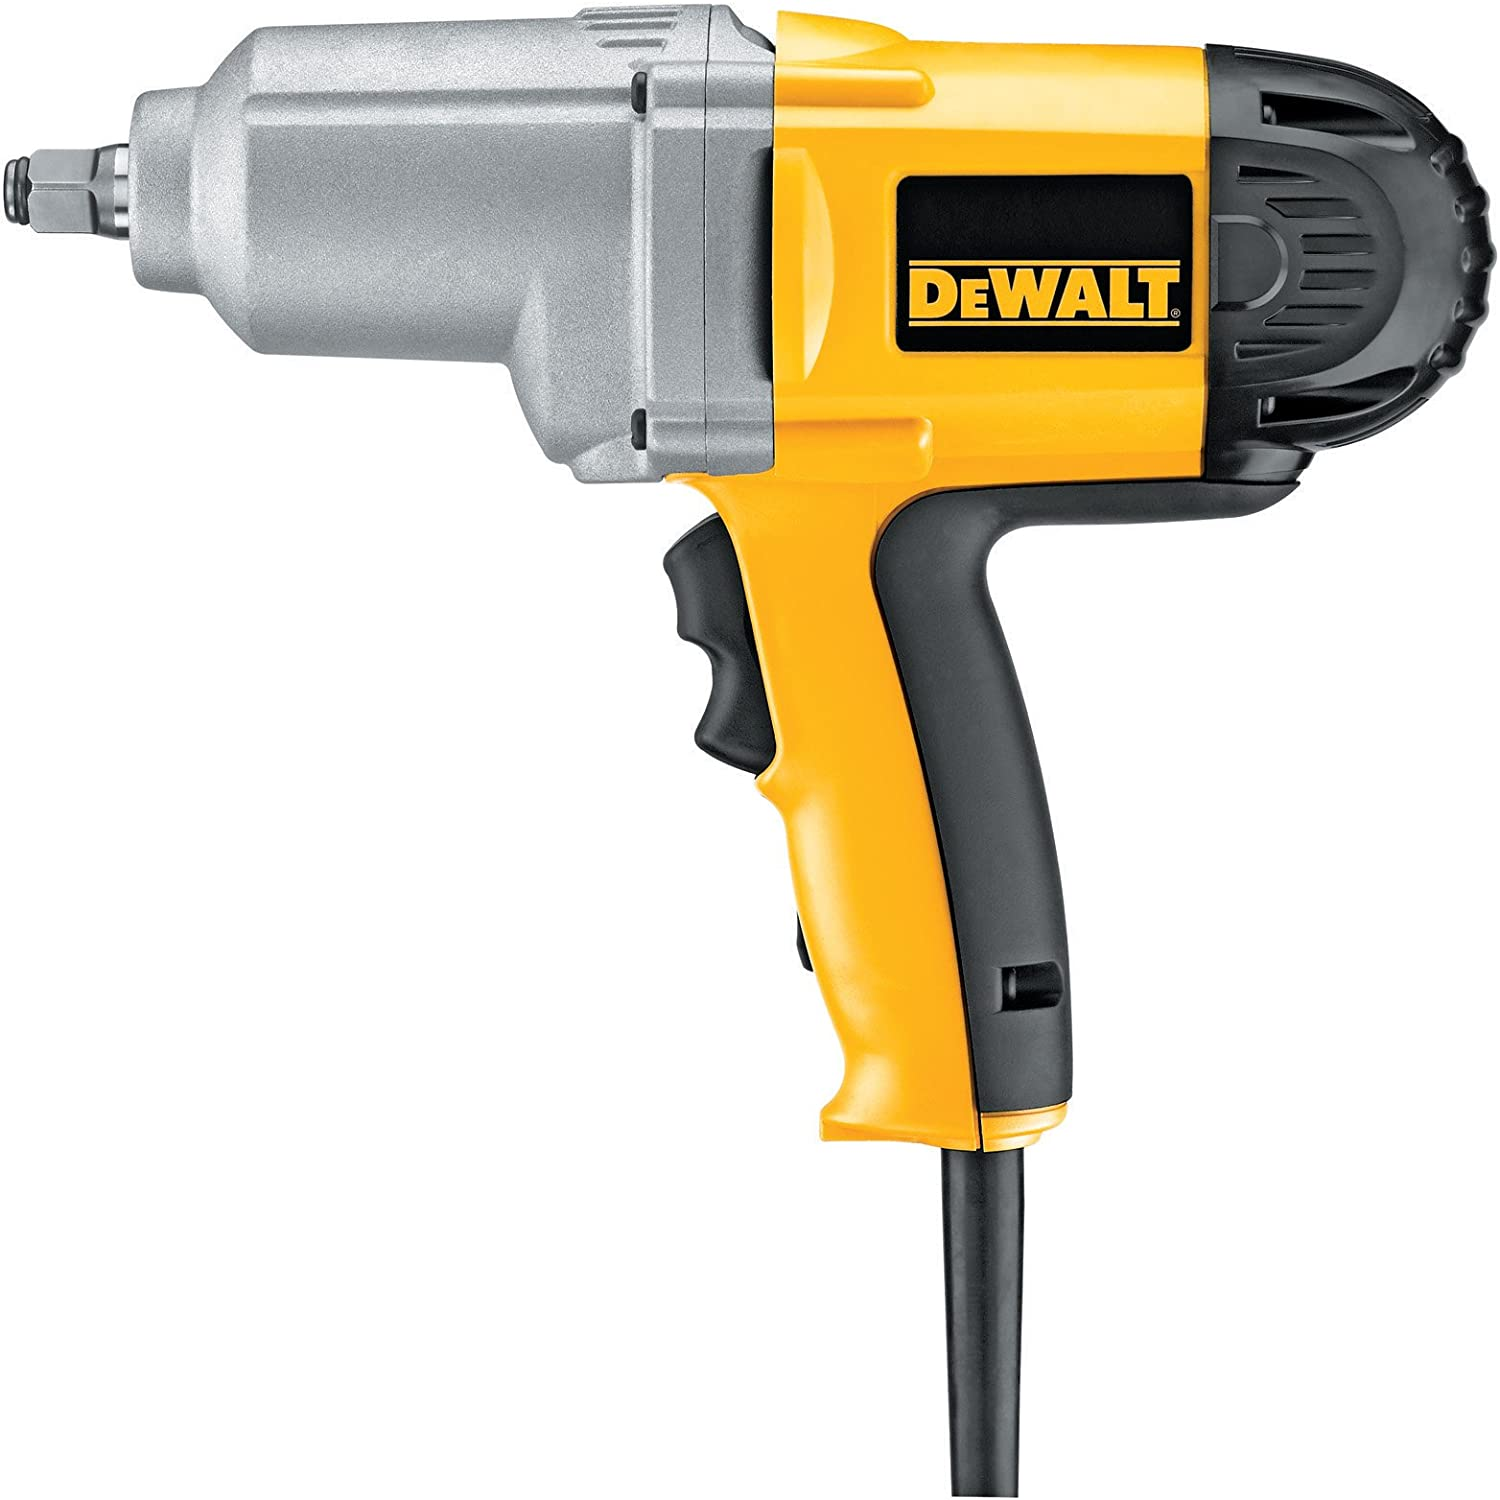 DEWALT DW293 7.5-Amp 1 2-Inch Impact Wrench with Hog Ring Anvil